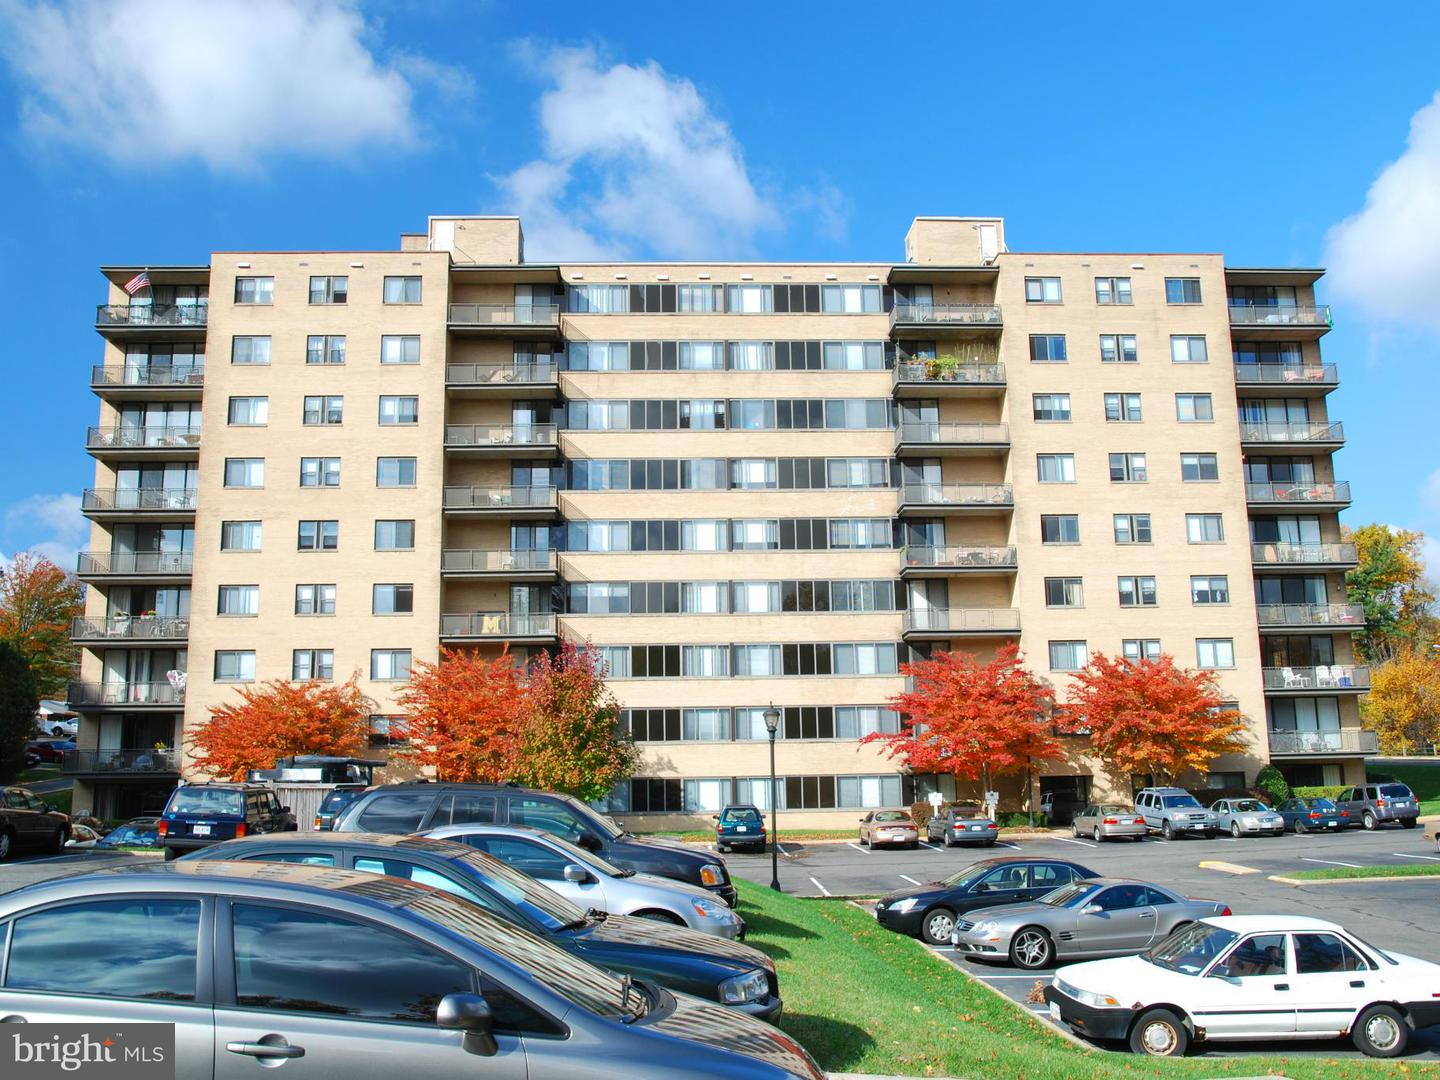 Additional photo for property listing at 4320 Old Dominion Dr #001/1  Arlington, Virginia 22207 United States